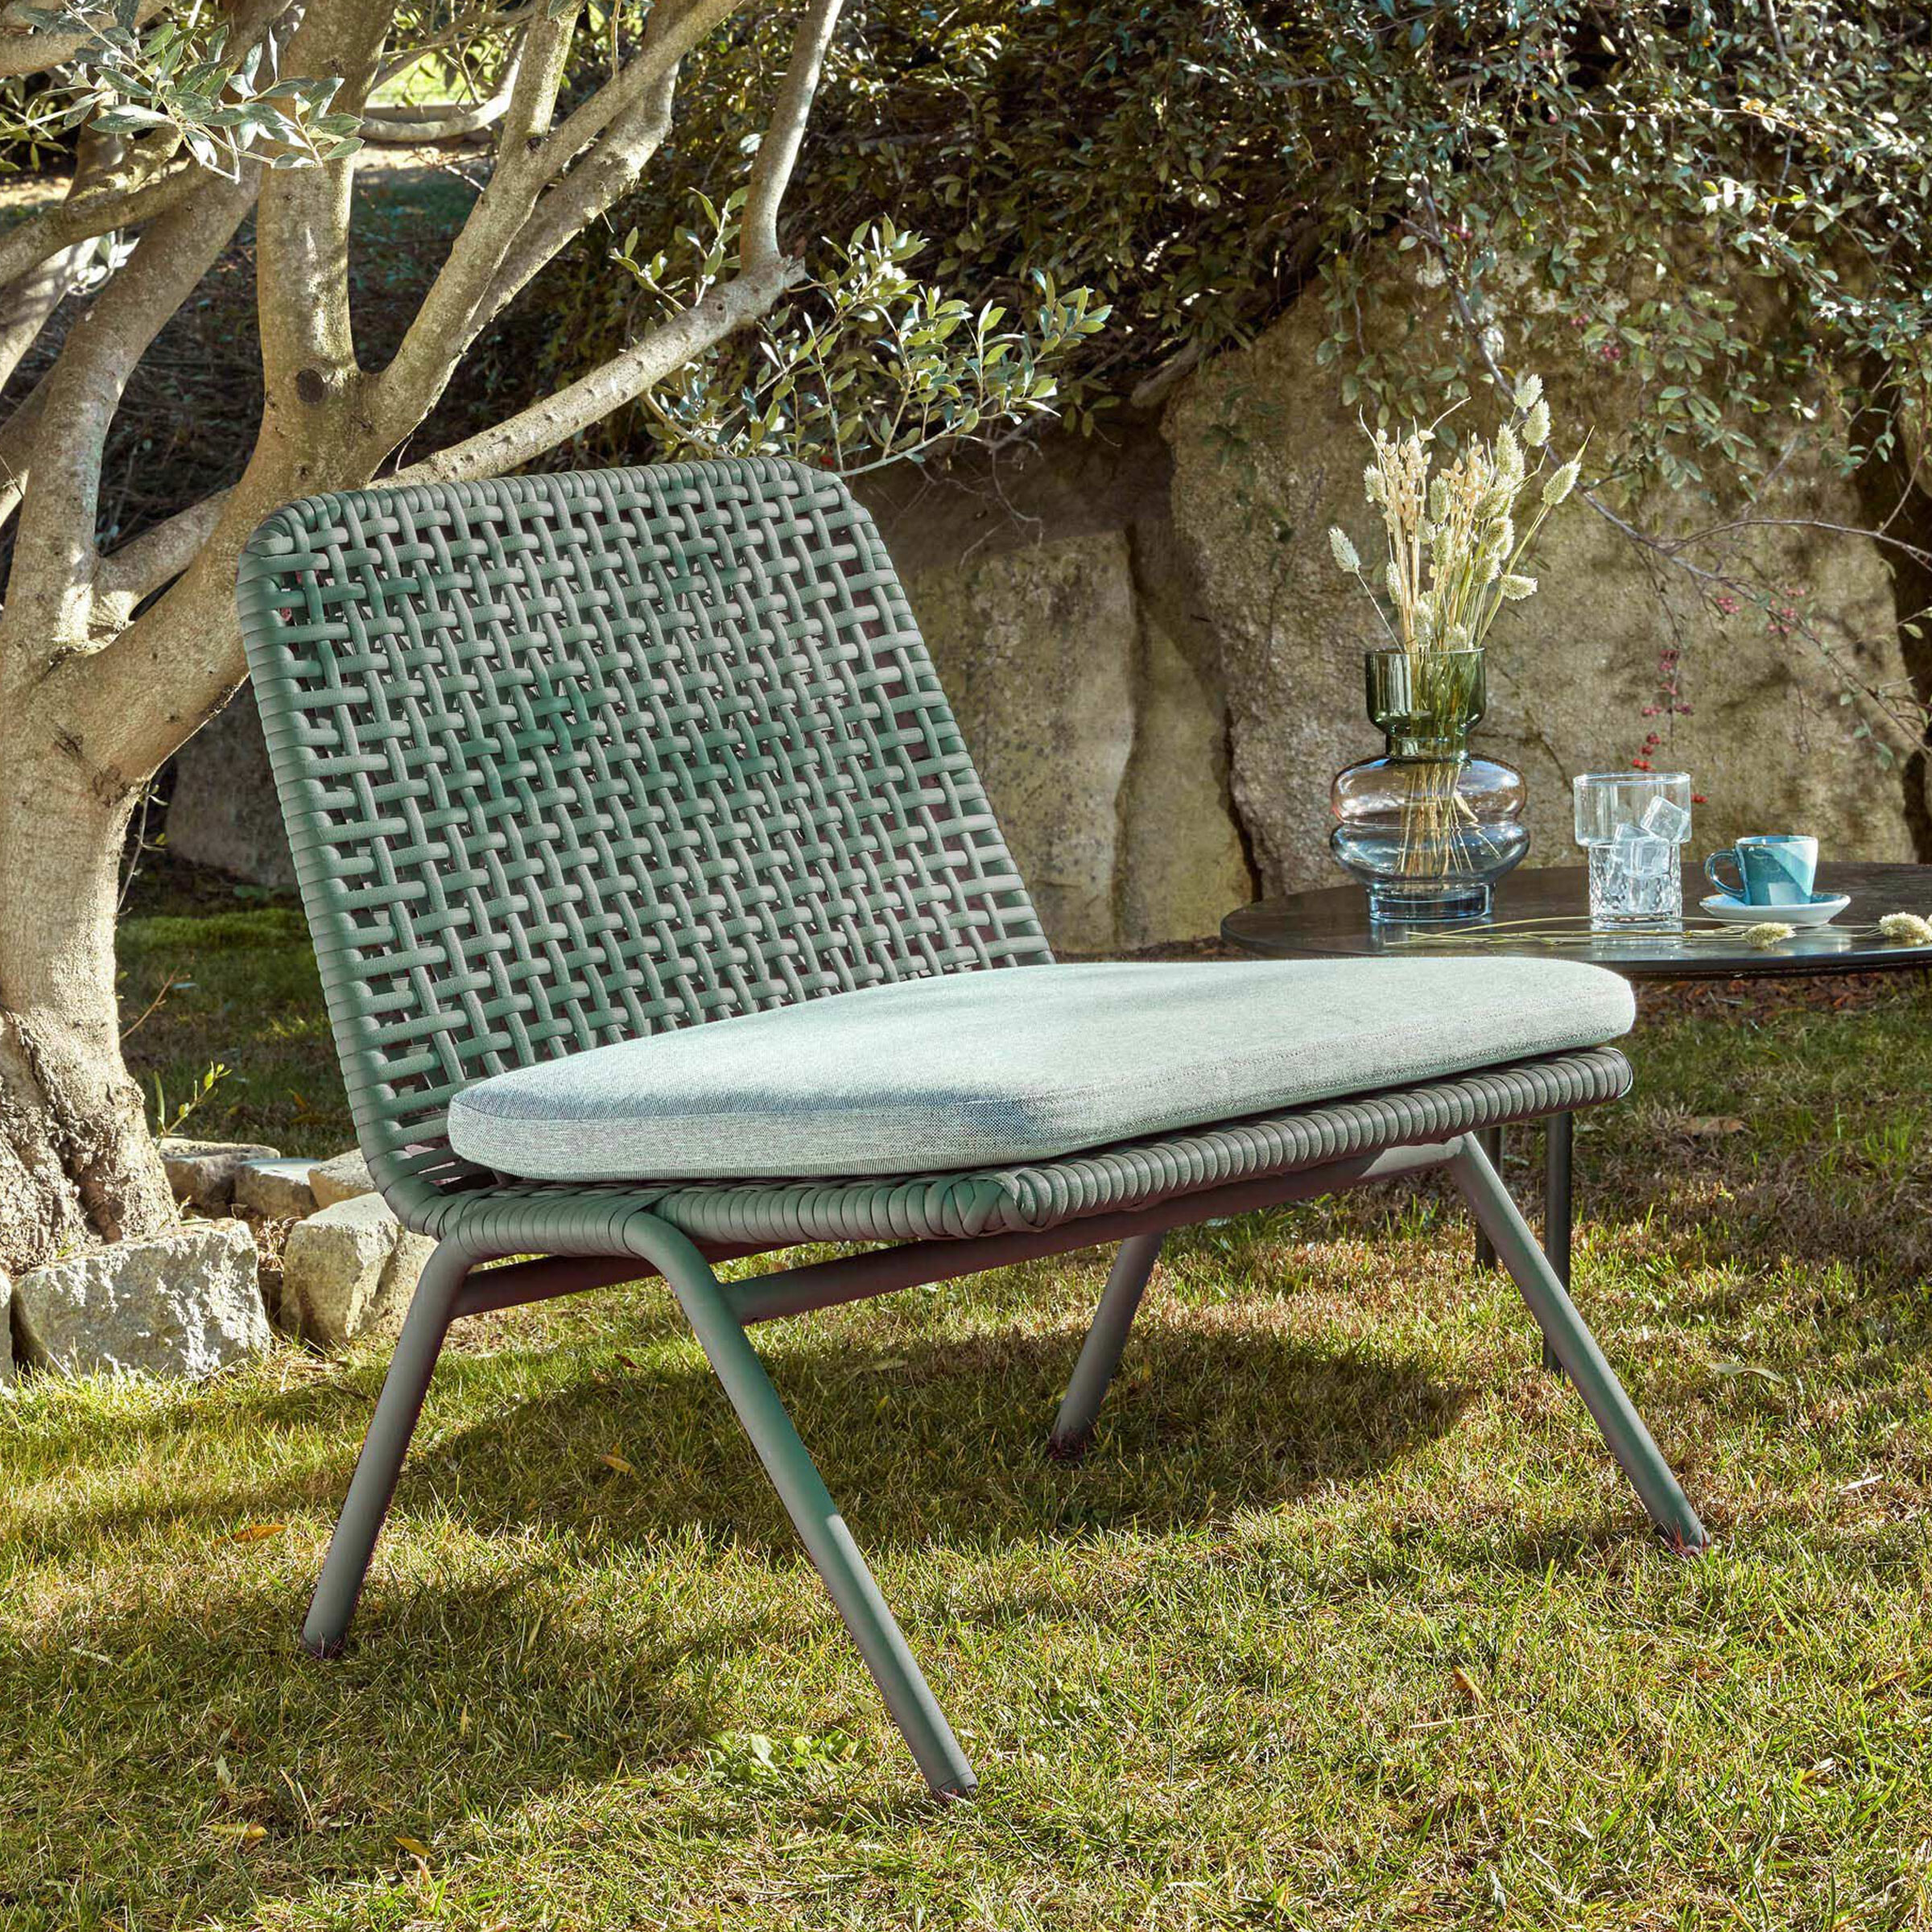 Kave Home Fauteuil 'Wivina', kleur Groen | Kave Home